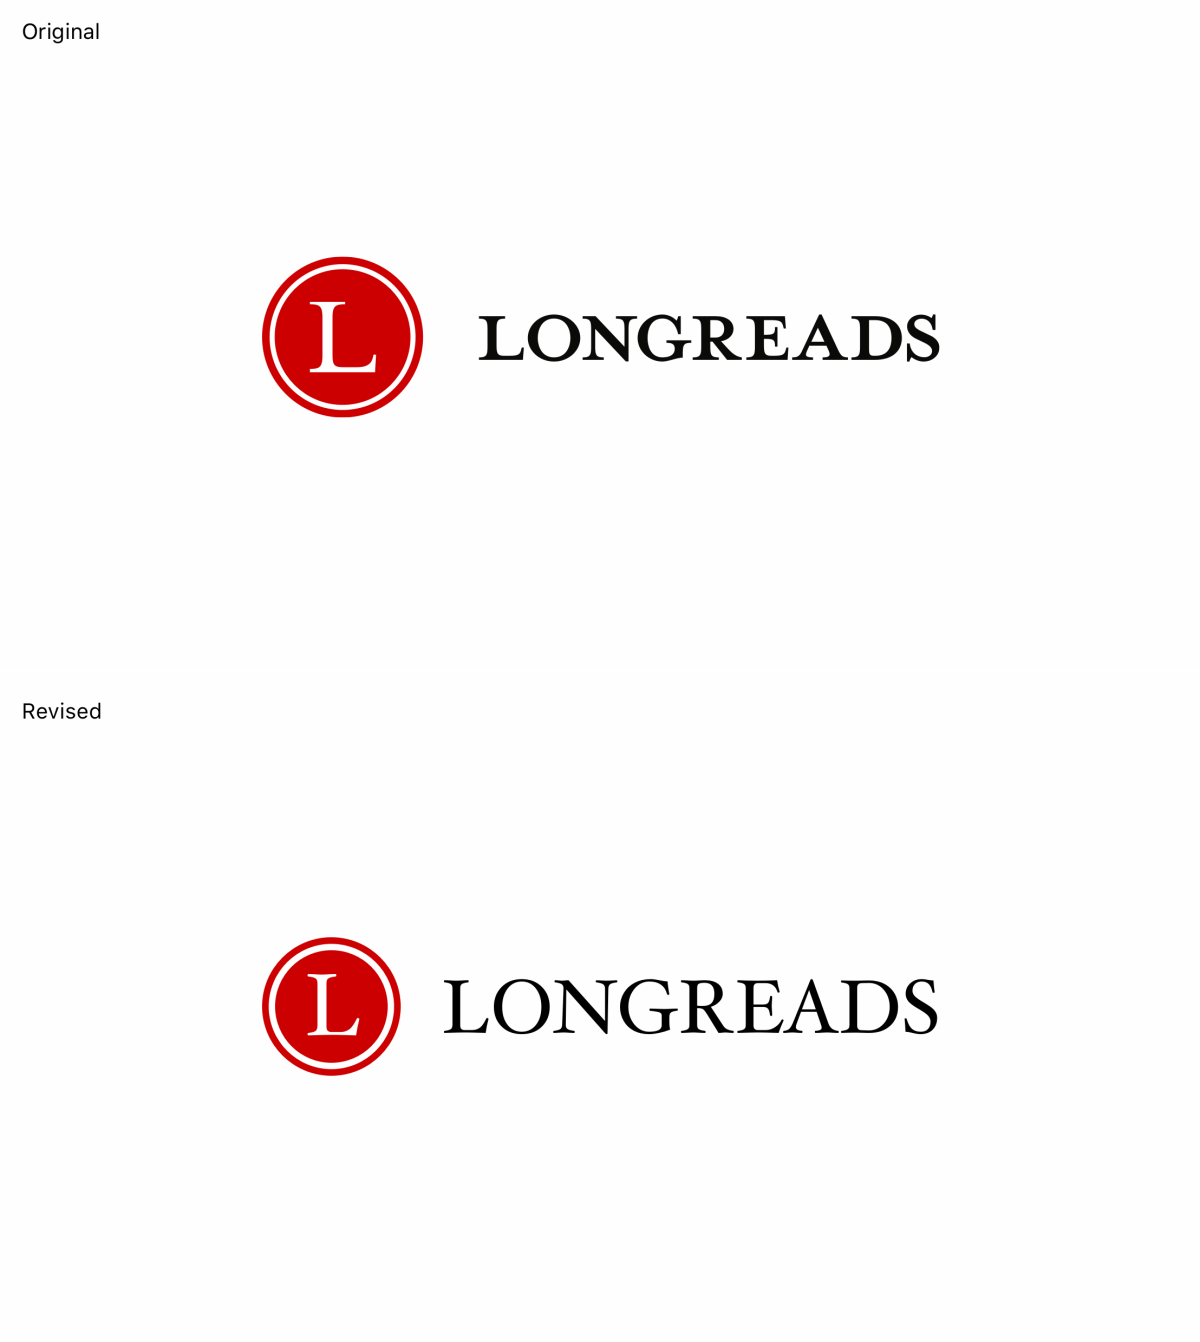 logo-comparison.png